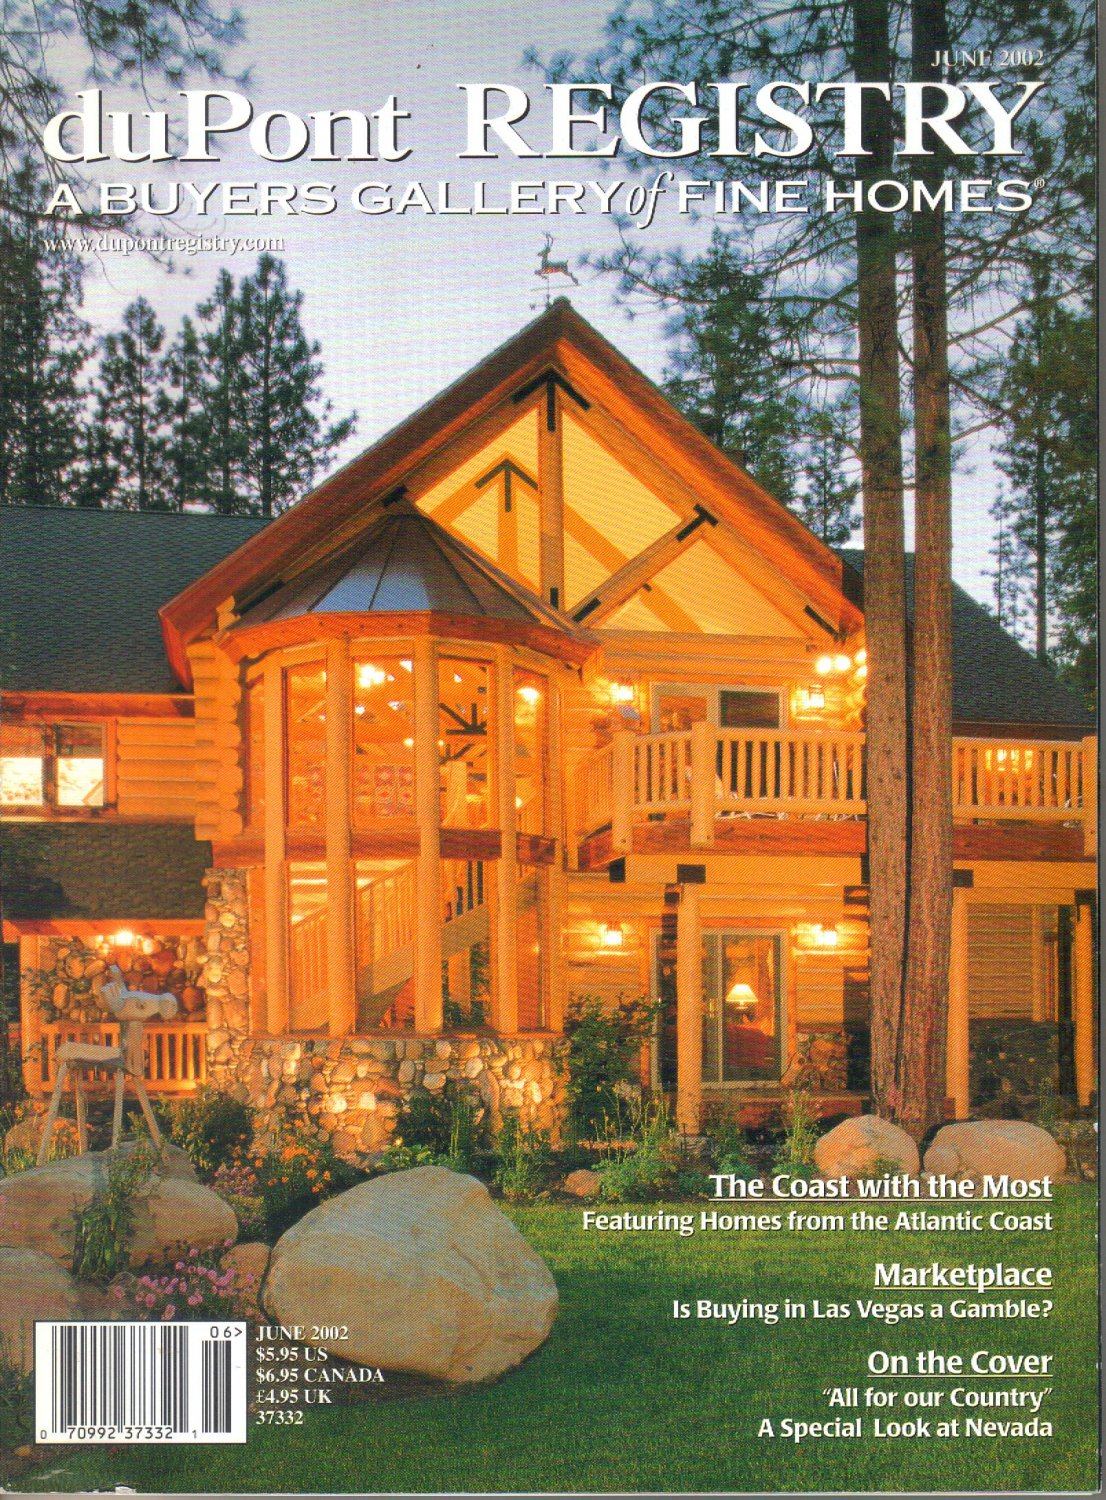 duPont Registry A Buyers Gallery of Fine Homes Magazine-June 2002-Eagle's Watch-Lake Tahoe